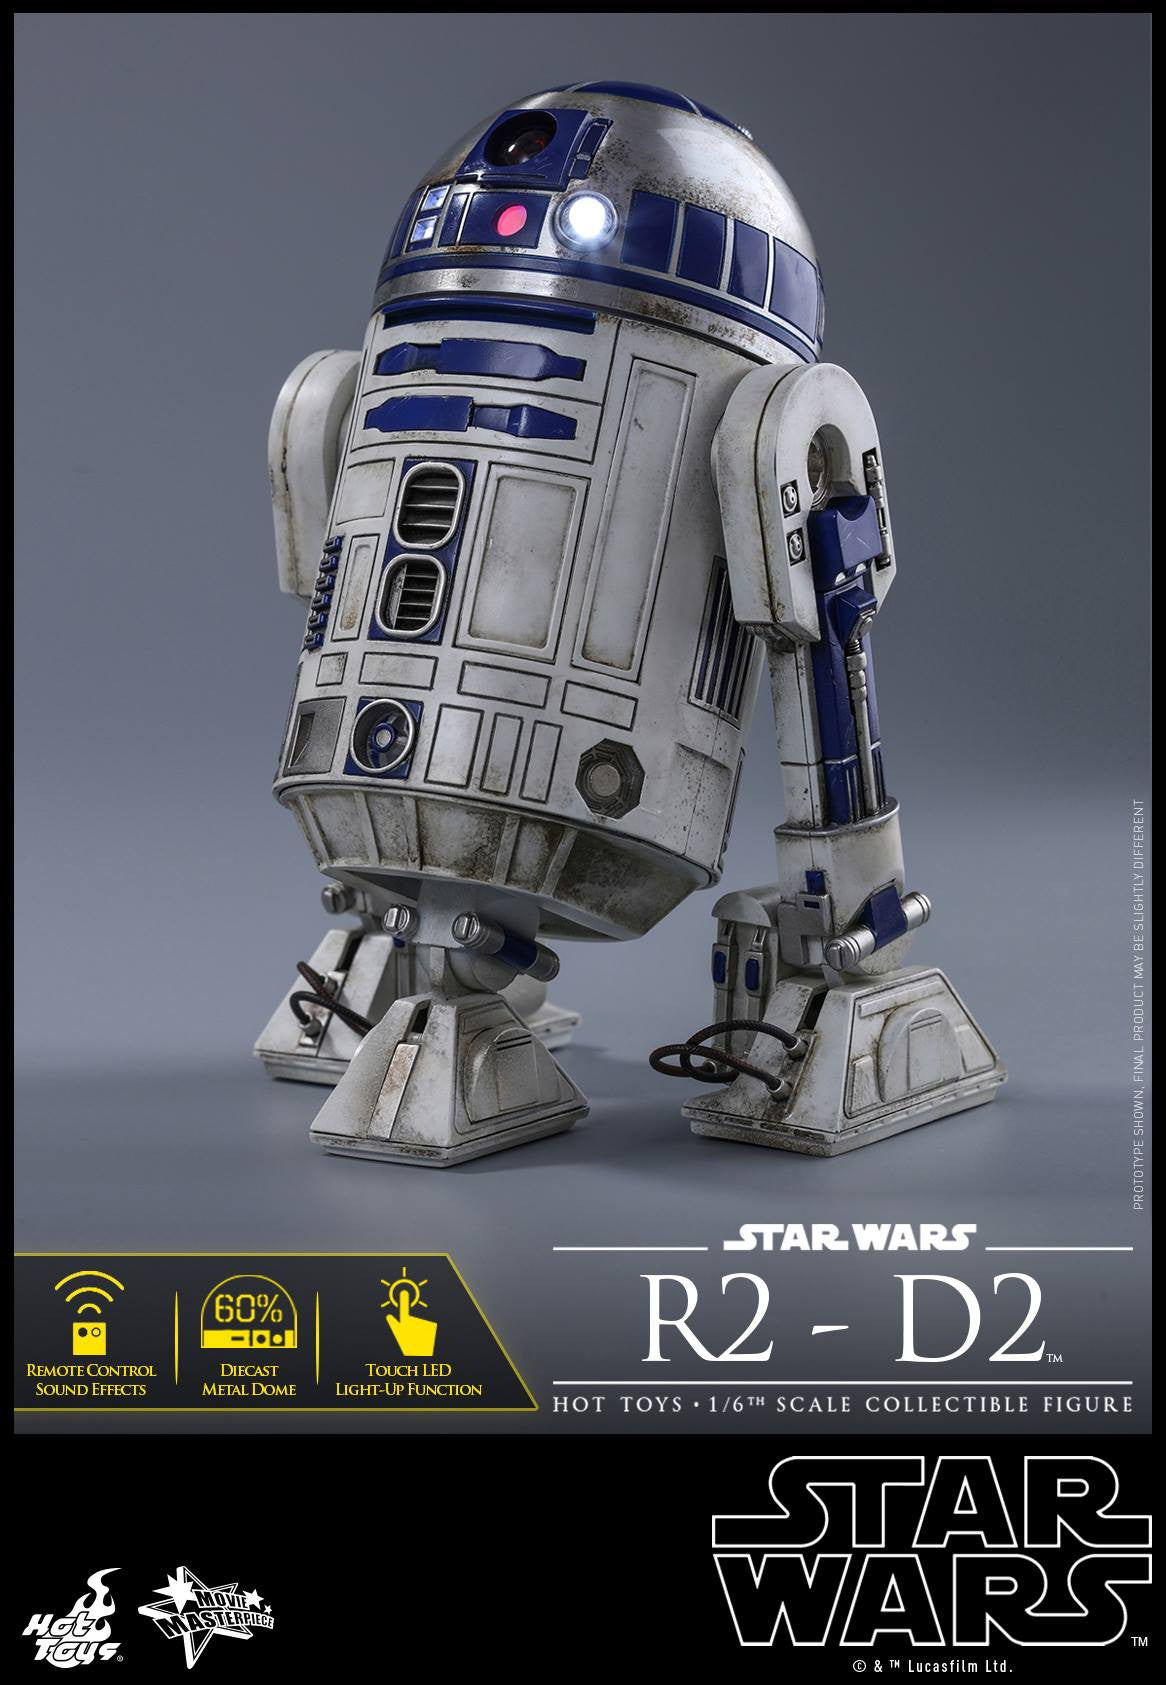 Hot Toys - MMS408 - Star Wars: The Force Awakens - R2-D2 - Marvelous Toys - 8